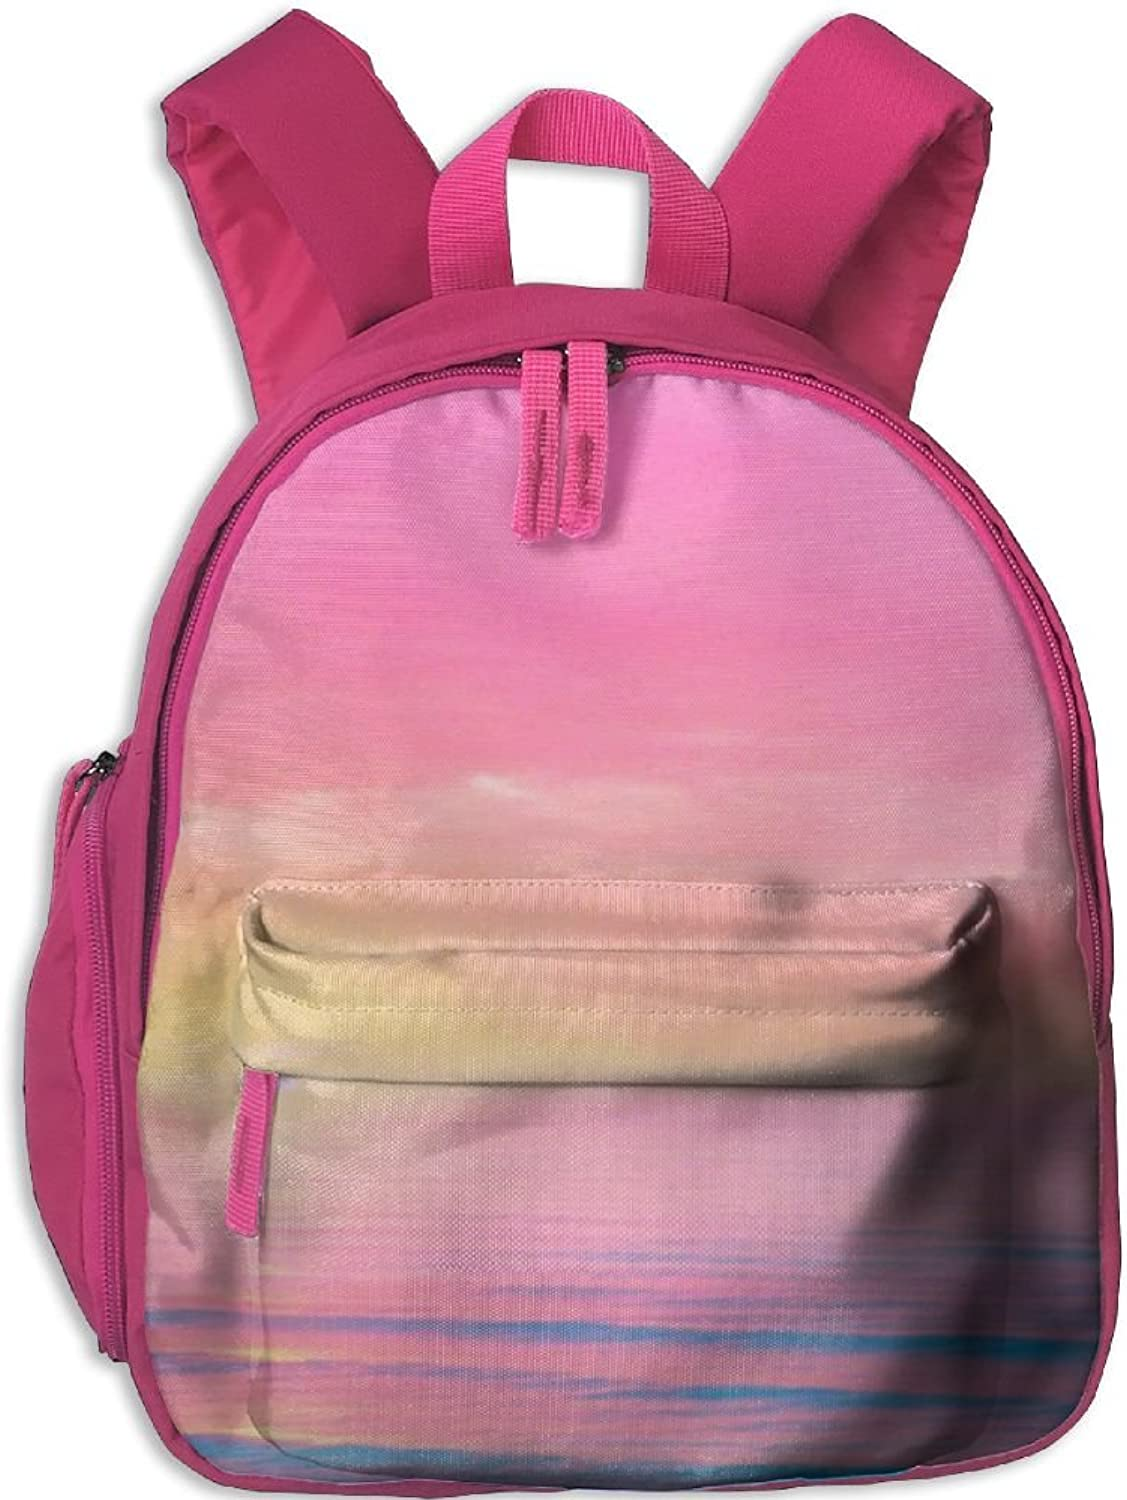 Pinta Setting Sun Cub Cool School Book Bag Backpacks for Girl's Boy's